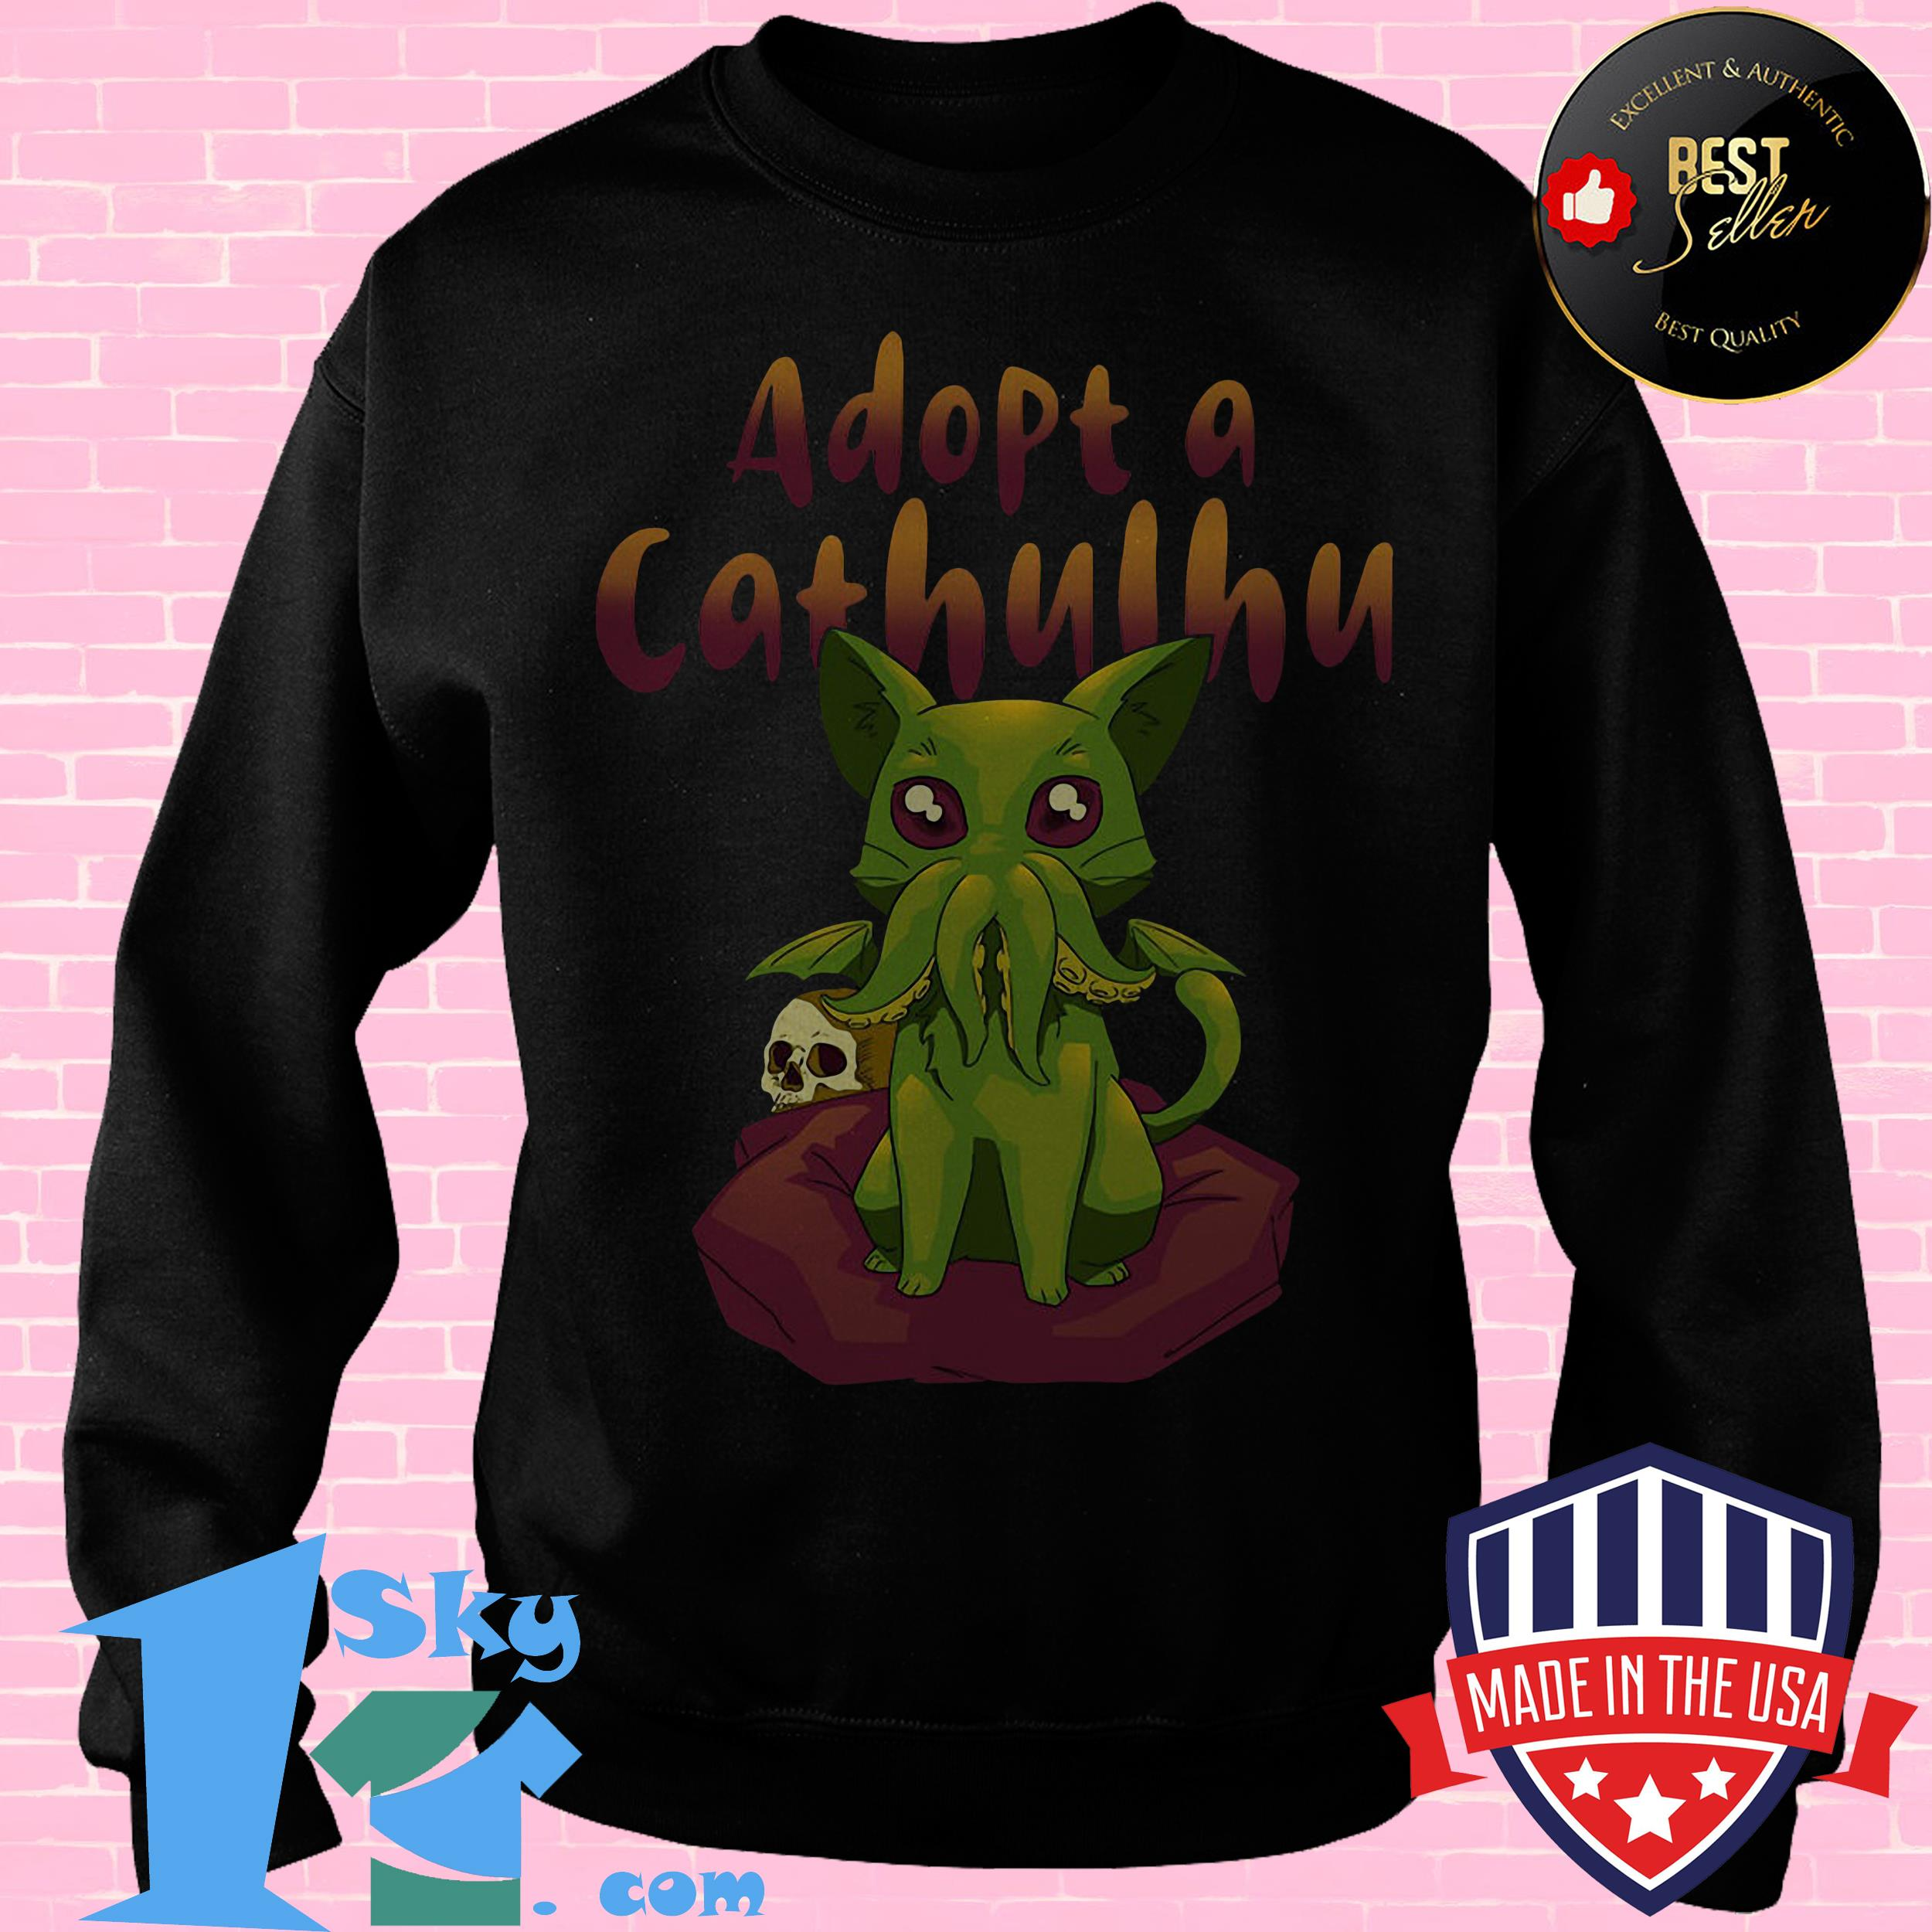 official goose adopt a cathulhu sweatshirt - Official Goose Adopt A Cathulhu Shirt